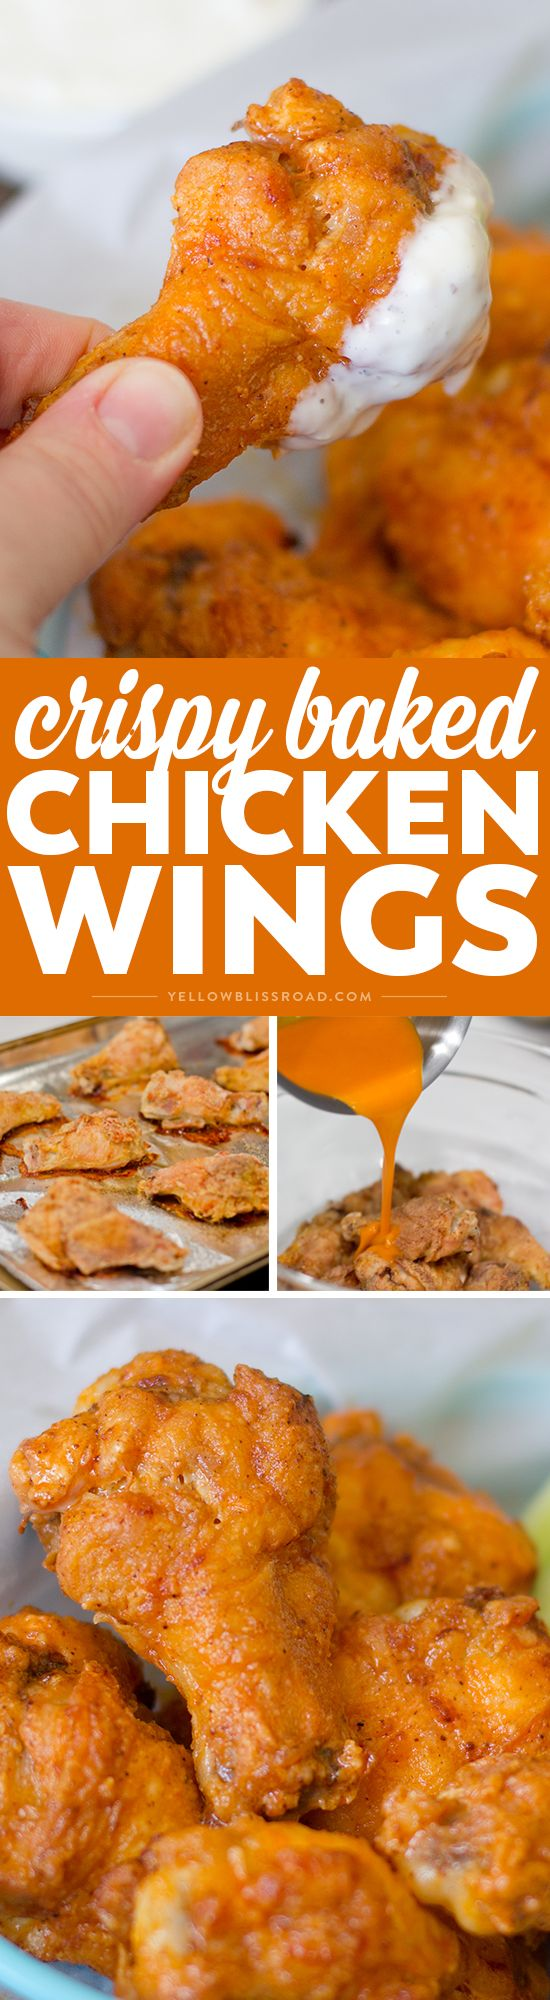 BEST EVER Crispy Baked Chicken Wings coated with spicy buffalo sauce. A family favorite for dinner or a game day appetizer favorite for a crowd! via @yellowblissroad